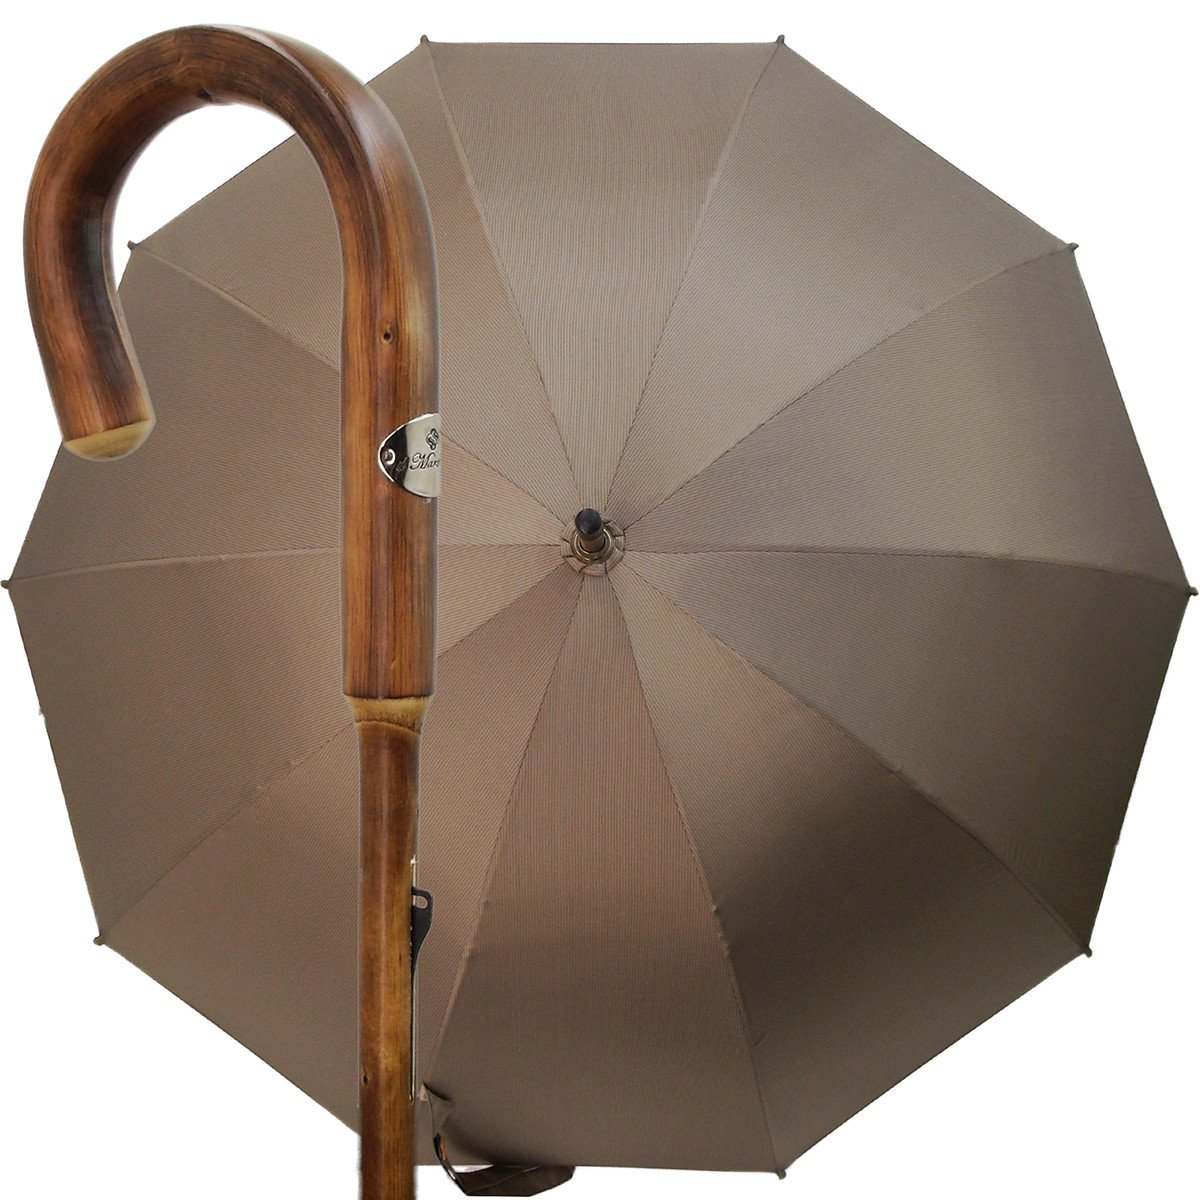 Carved From One Piece of Chestnut Wood - Beige Checked Twill Umbrella